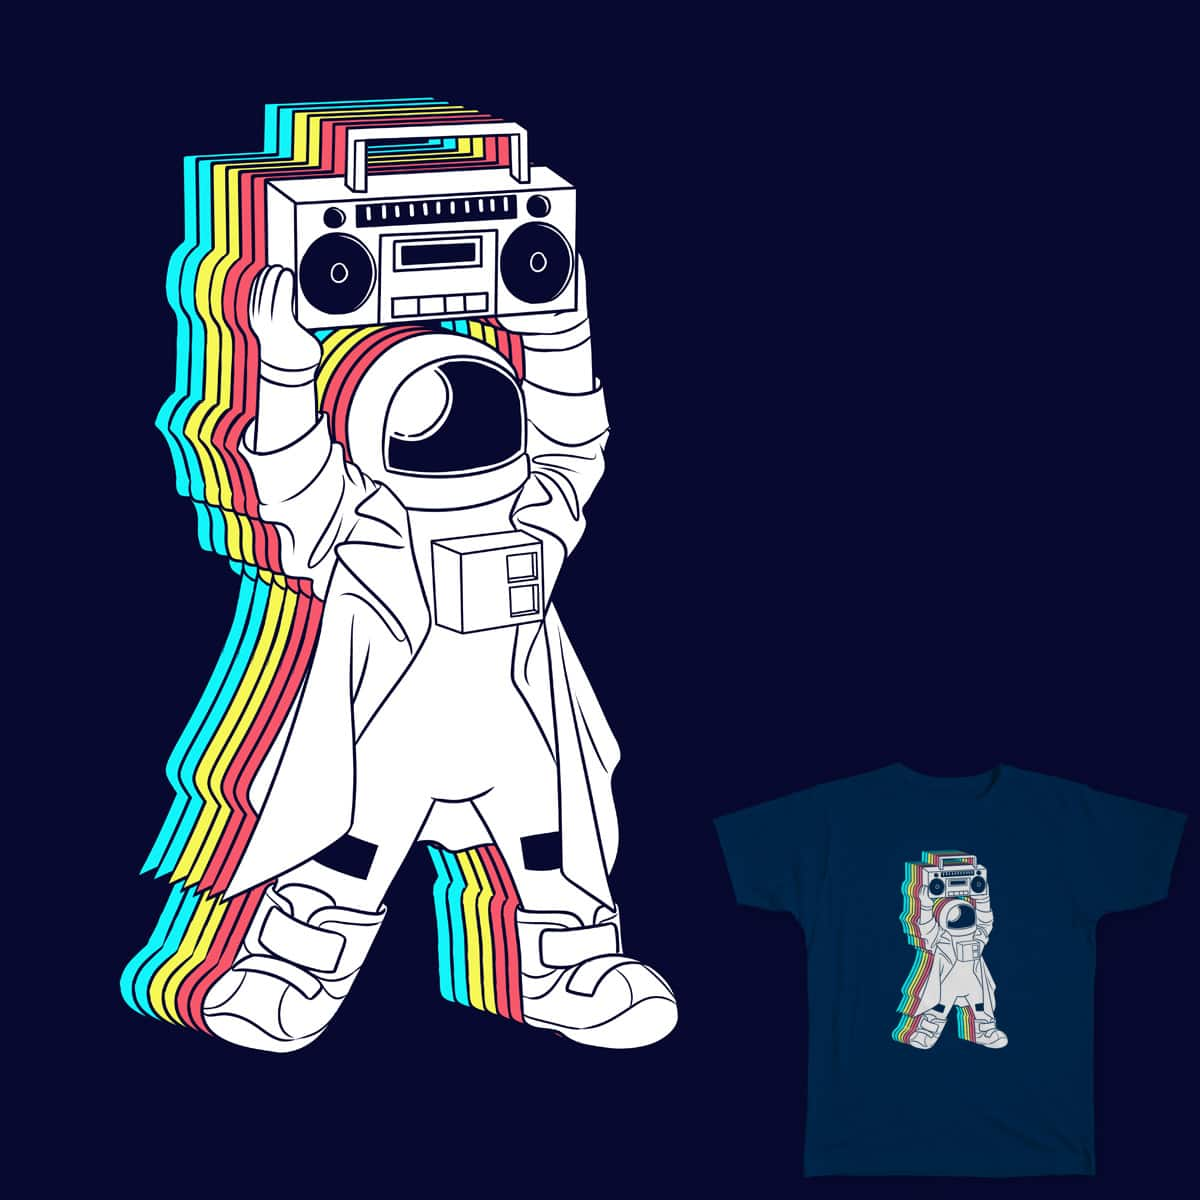 Say Funkalicious by whiskysteaks on Threadless